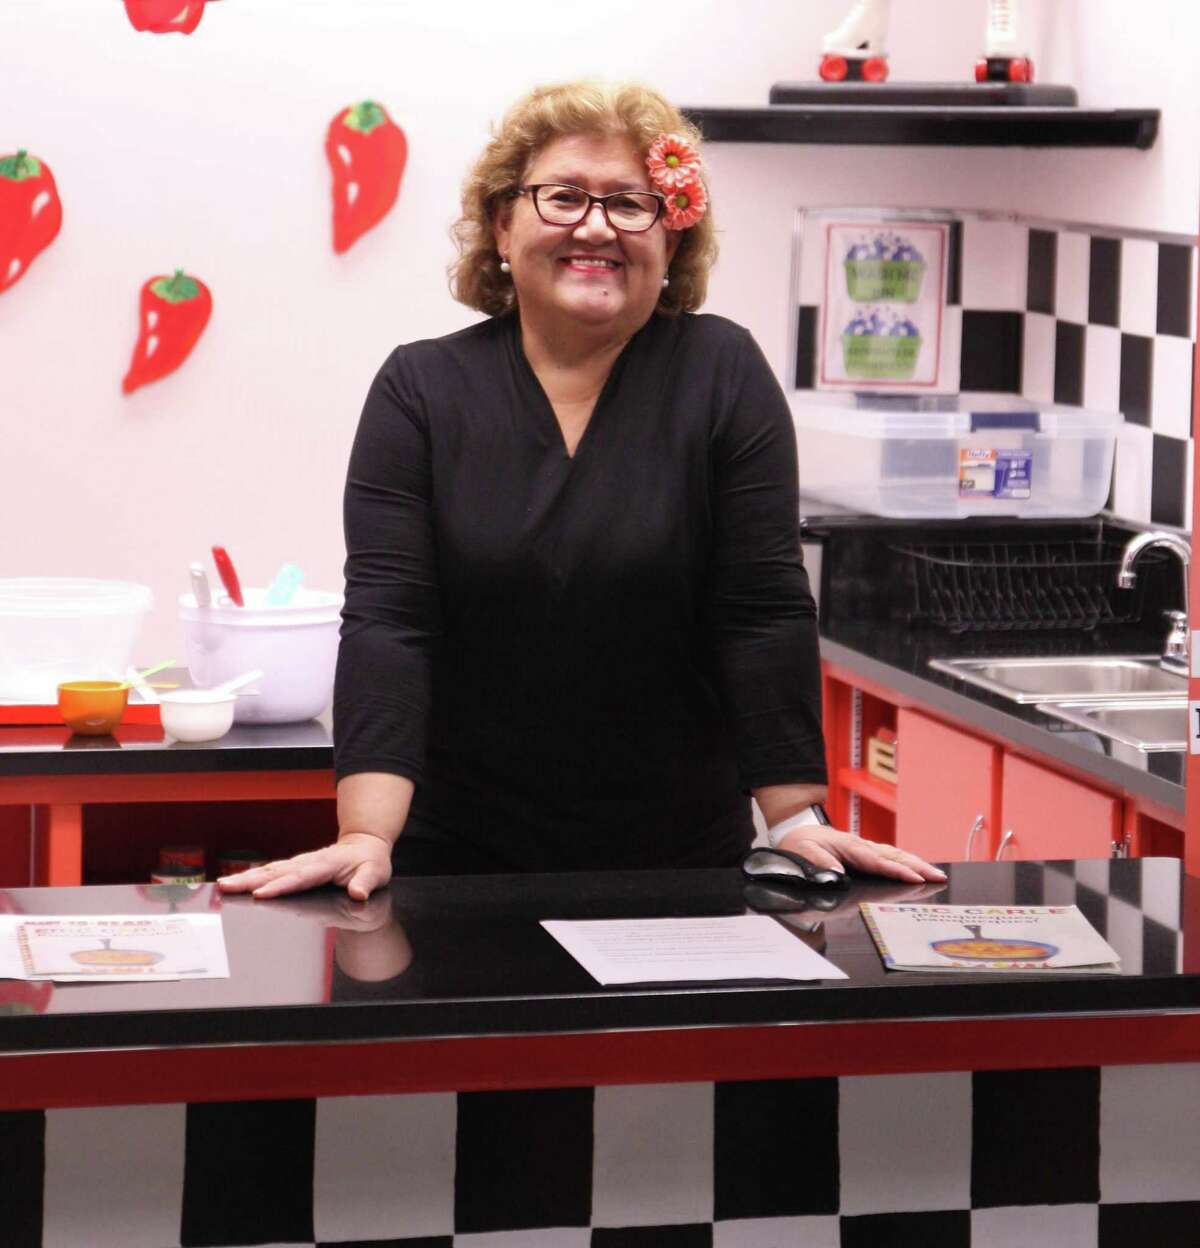 KidsPlay Children's Museum, a local cultural and educational institution that serves children and their families announces the appointment of Carmen Neale to the Board of Directors.